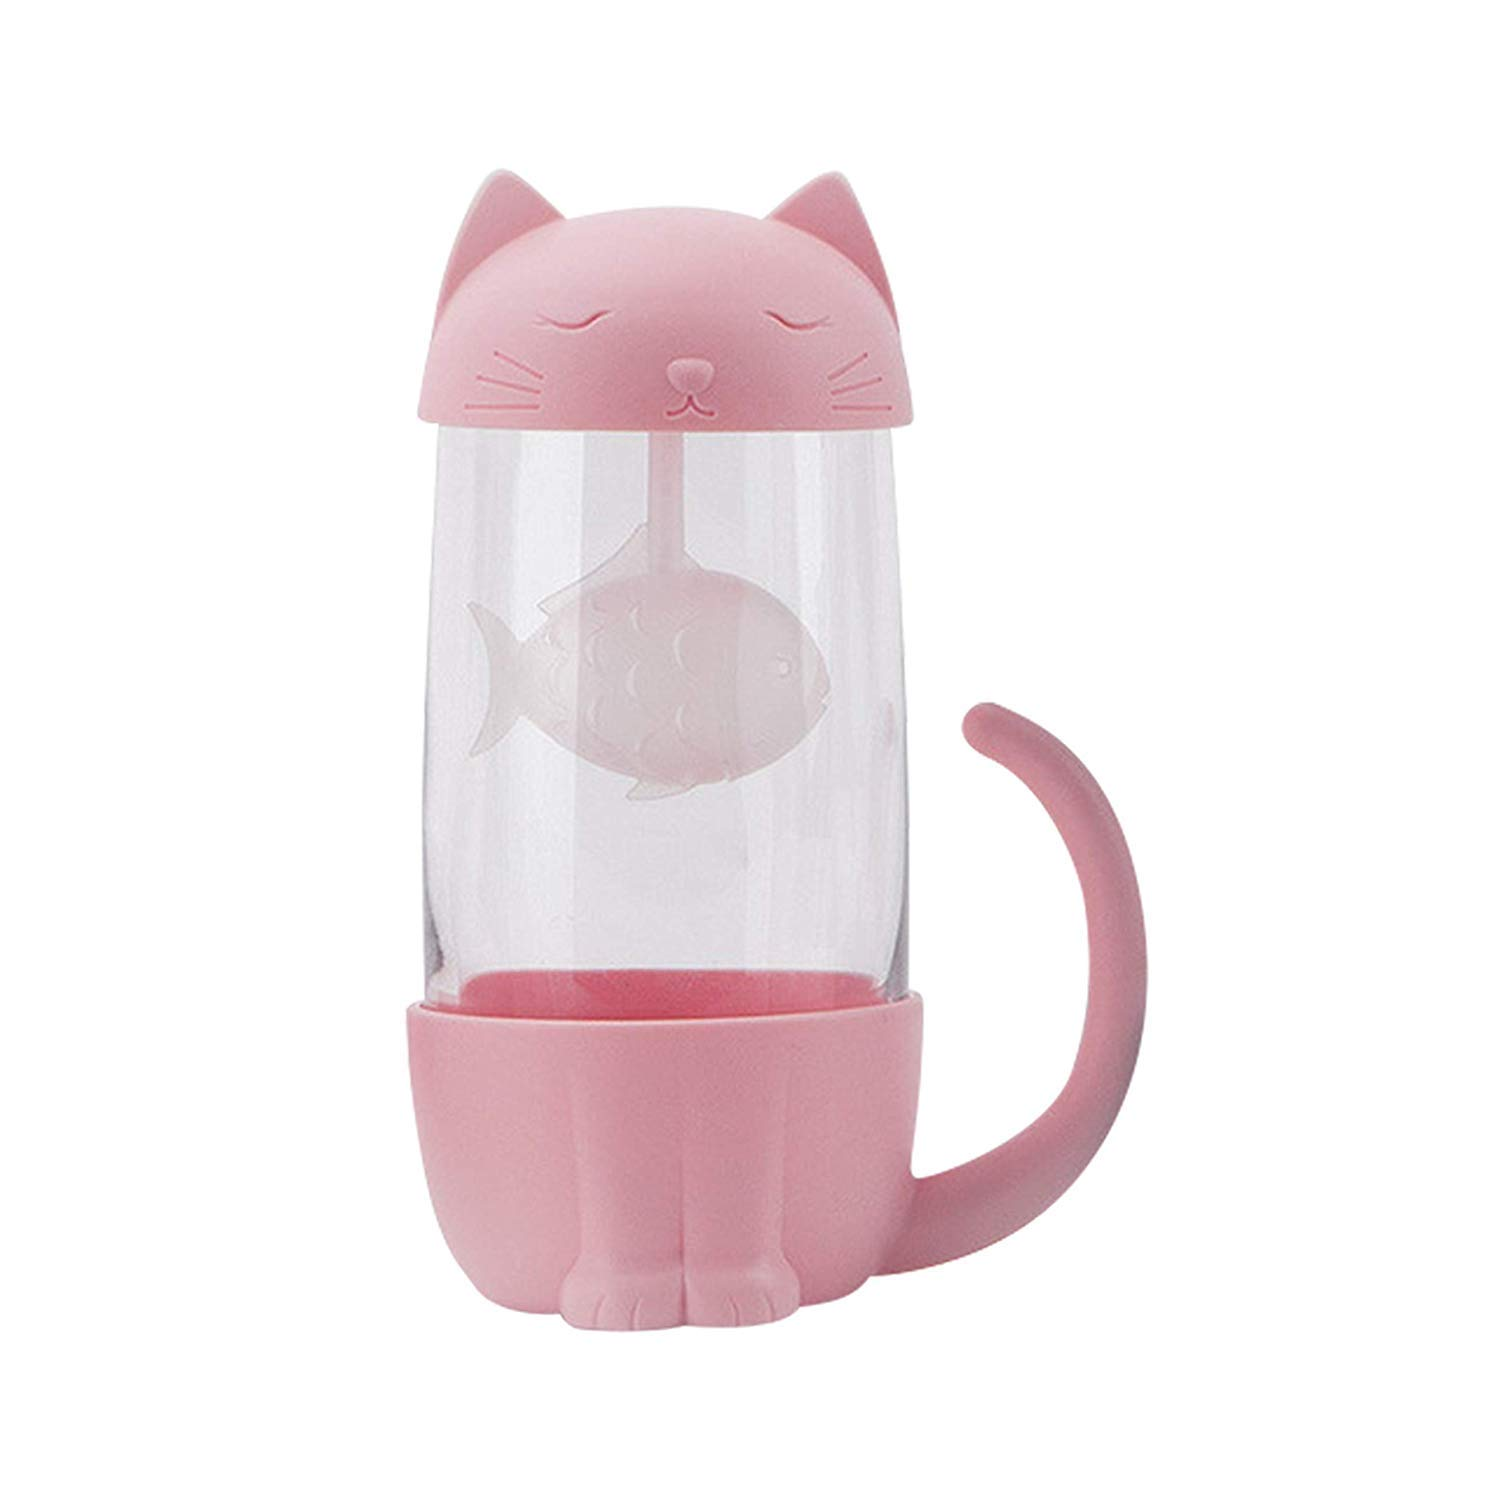 Novelty Cat Glass Tea Cup Water Coffee Bottle with Infuser Strainer Filter Ideal Christmas Birthday Gift 6.06 x 4.13 inch, 10 oz 300 ml Pink Txyk